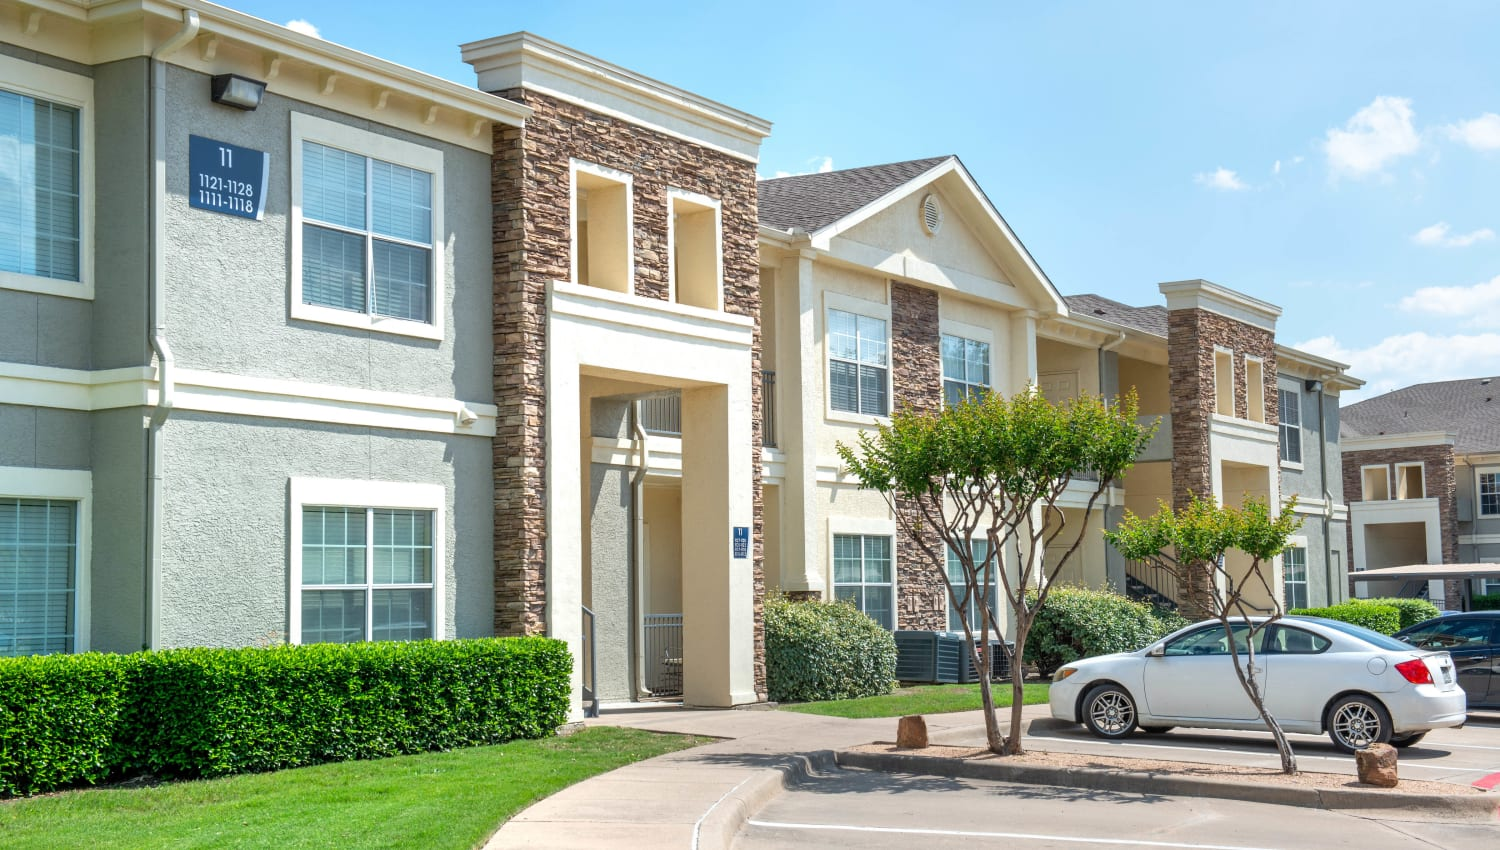 Parking and well-maintained landscaping outside resident buildings at Olympus Stone Glen in Keller, Texas